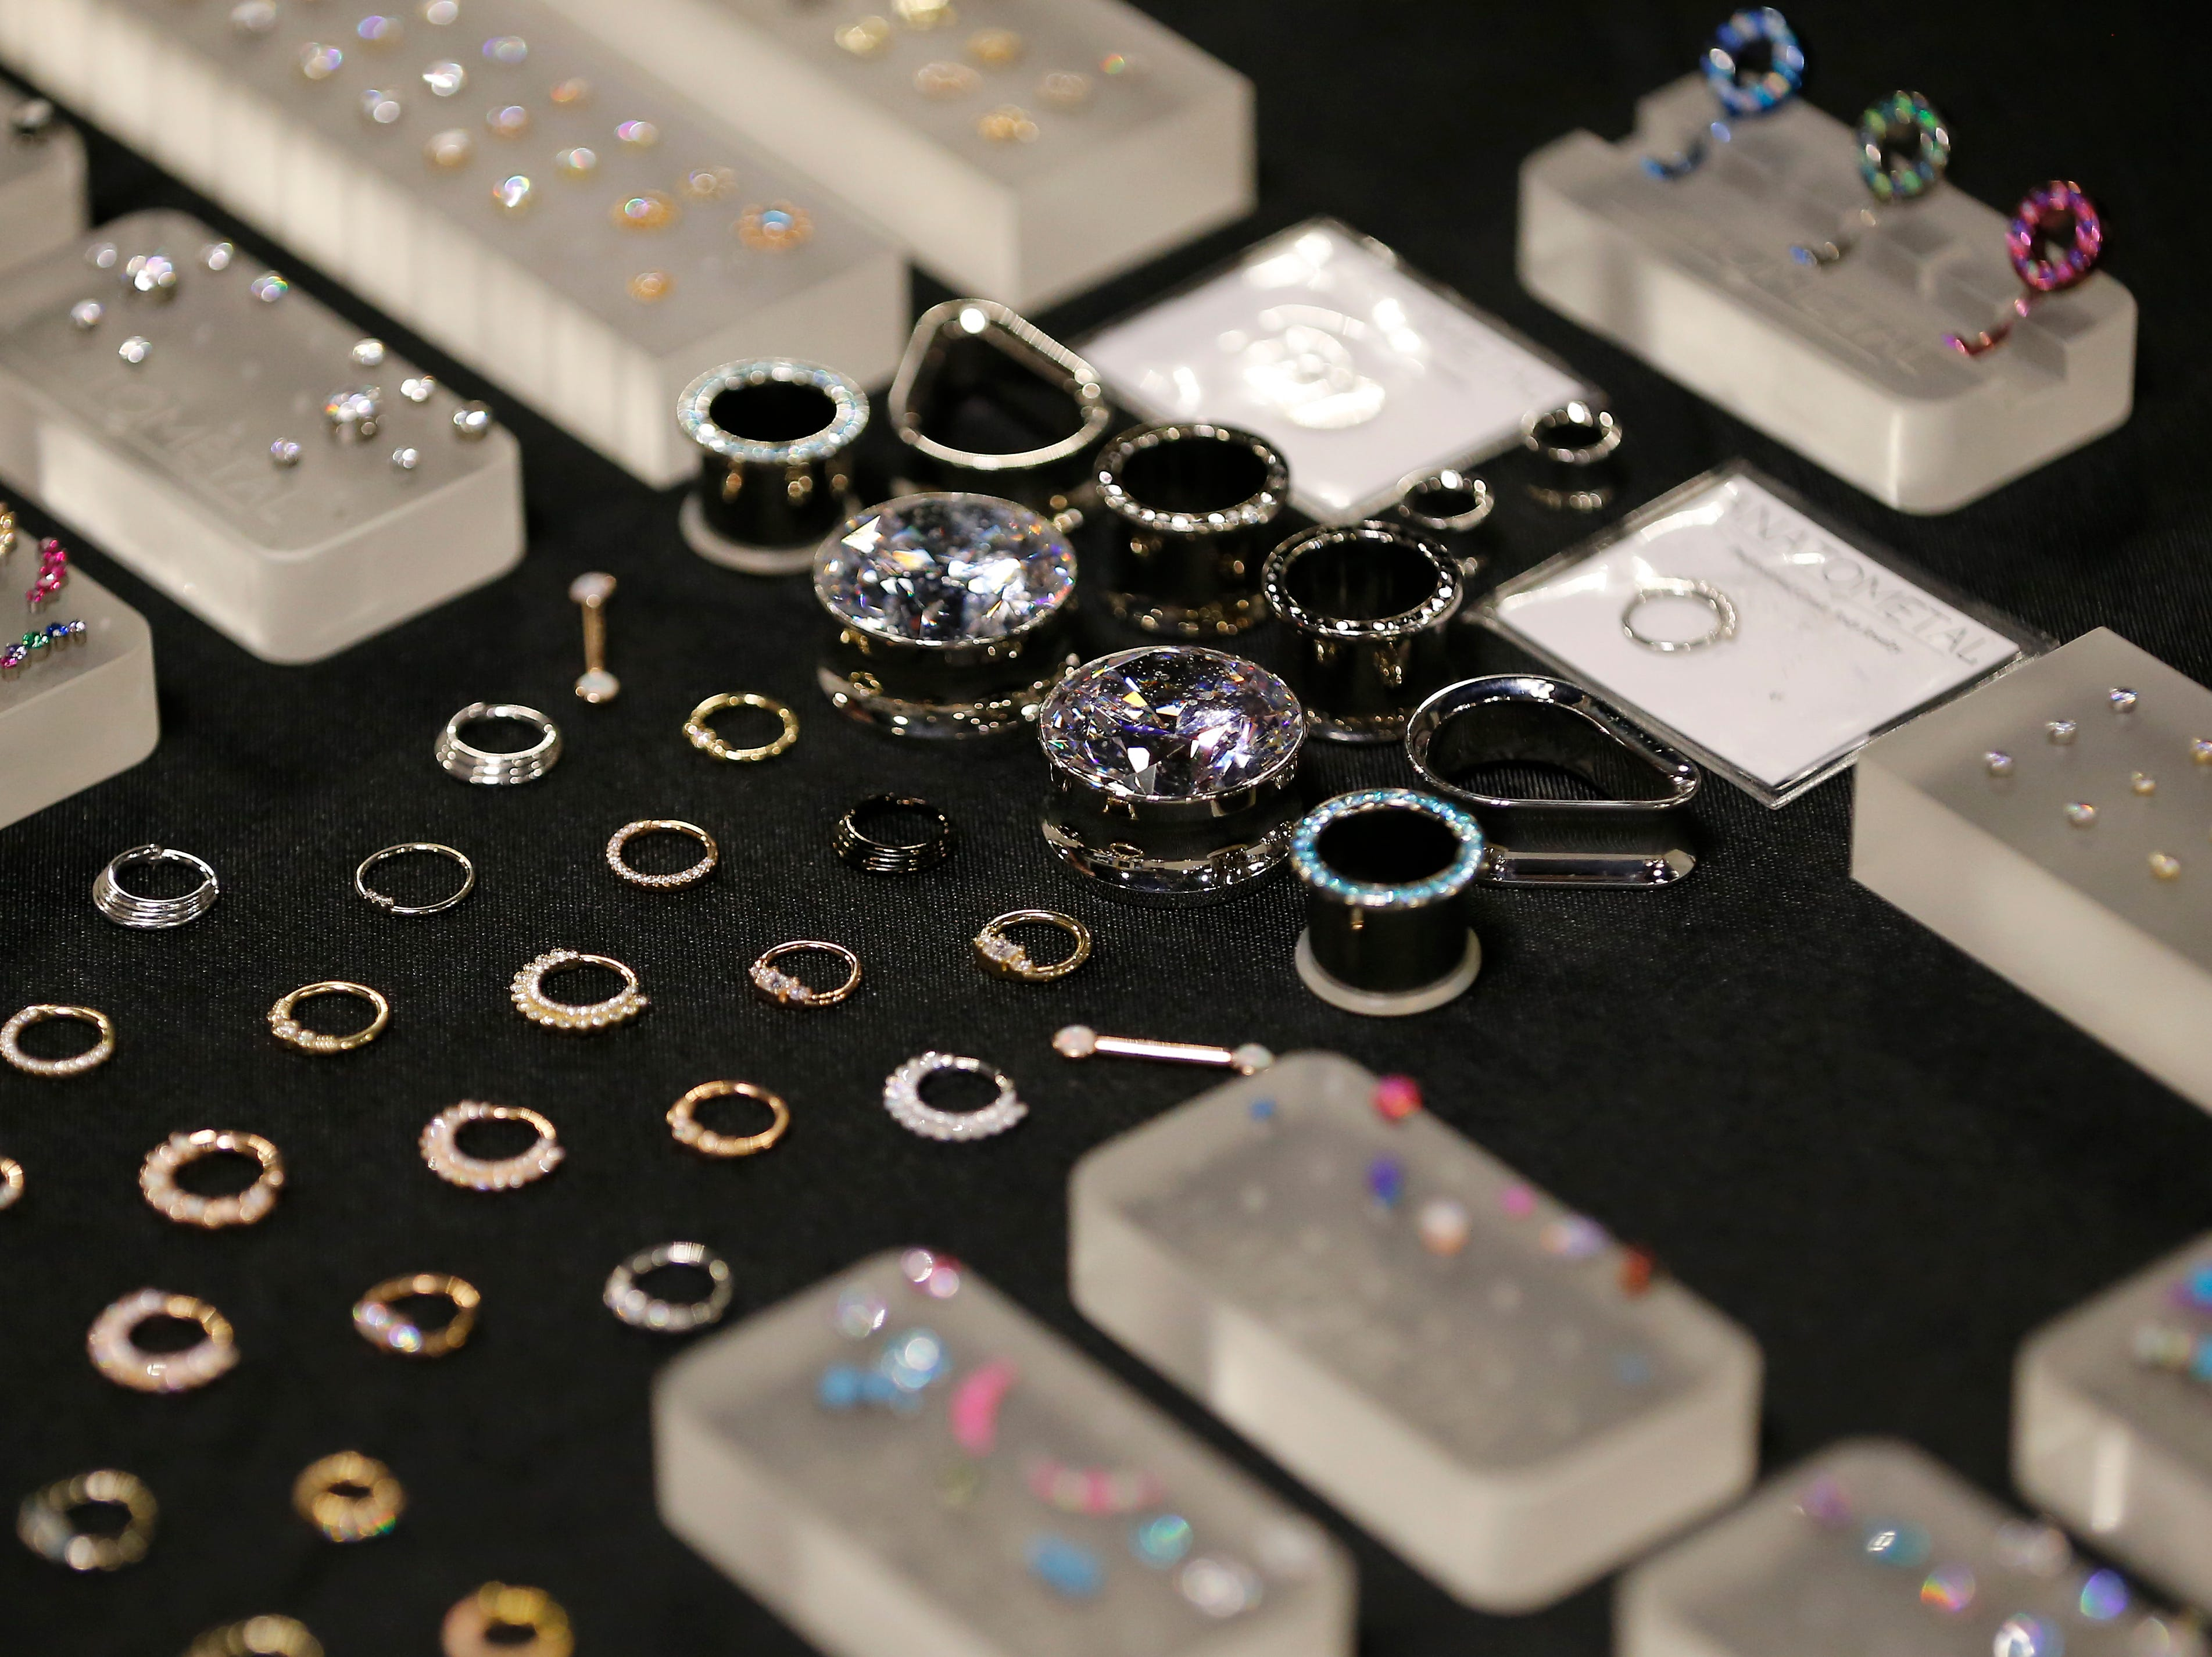 Body jewelry is displayed during the Greater Cincinnati Tattoo Arts Convention at the Northern Kentucky Convention Center in Covington, Ky., on Friday, Sept. 7, 2018.